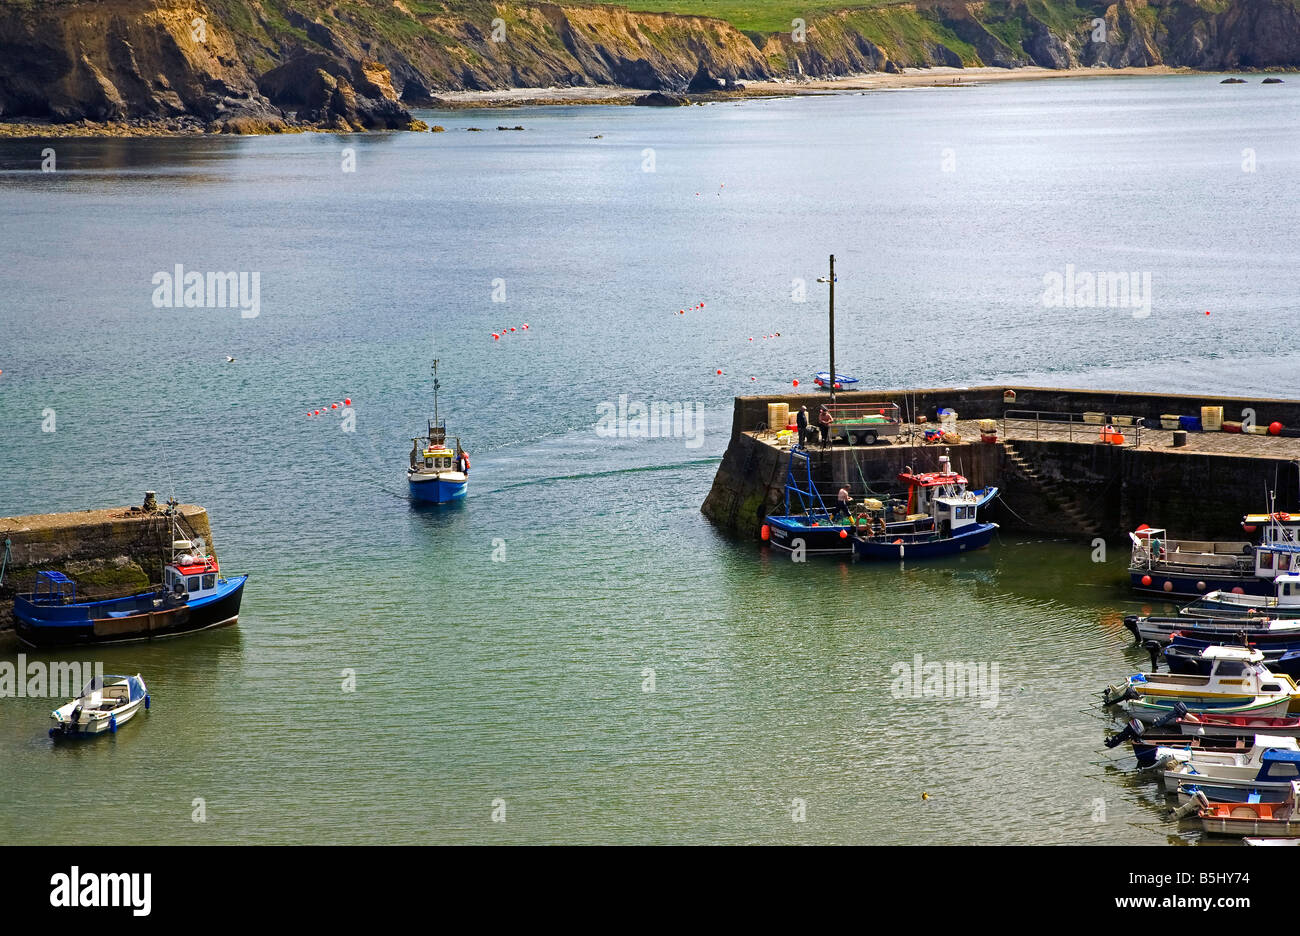 In shore Fishing Boat Entering Boatstrand Harbour, Copper Coast, County Waterford, Ireland - Stock Image